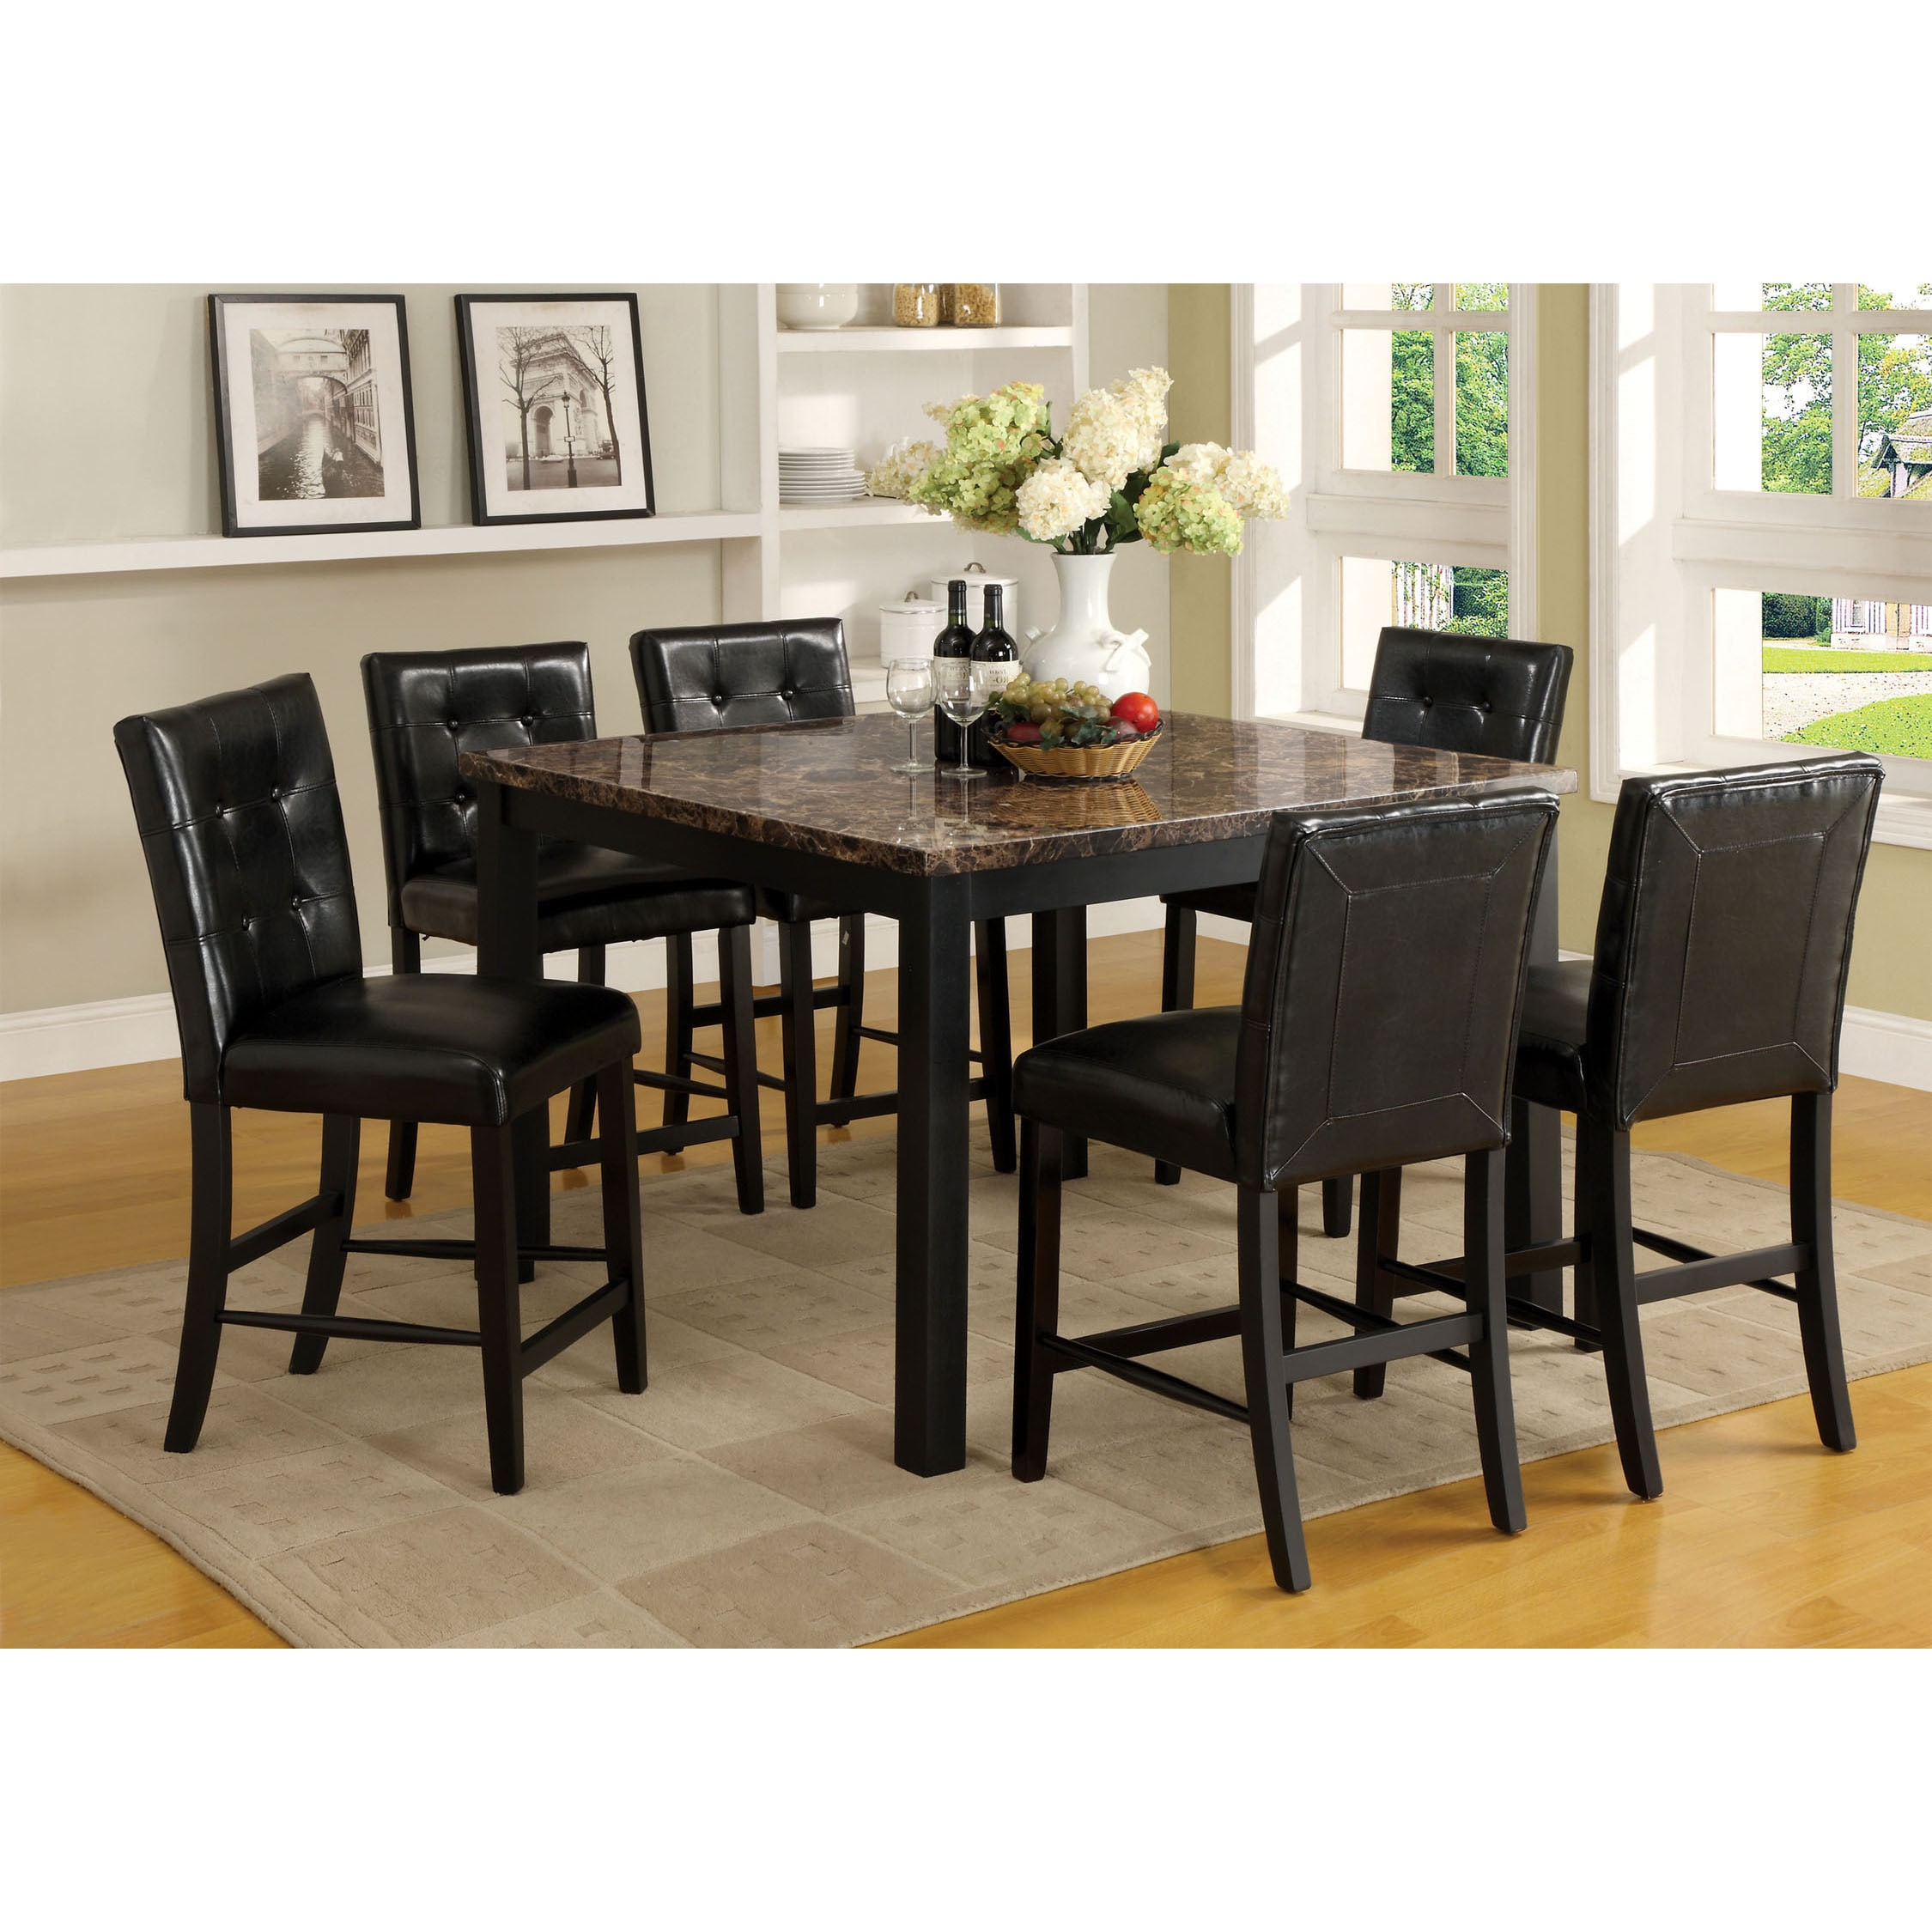 Beau Shop Furniture Of America Perthien 7 Piece Counter Height Faux Marble  Dining Set   Free Shipping Today   Overstock.com   9440058